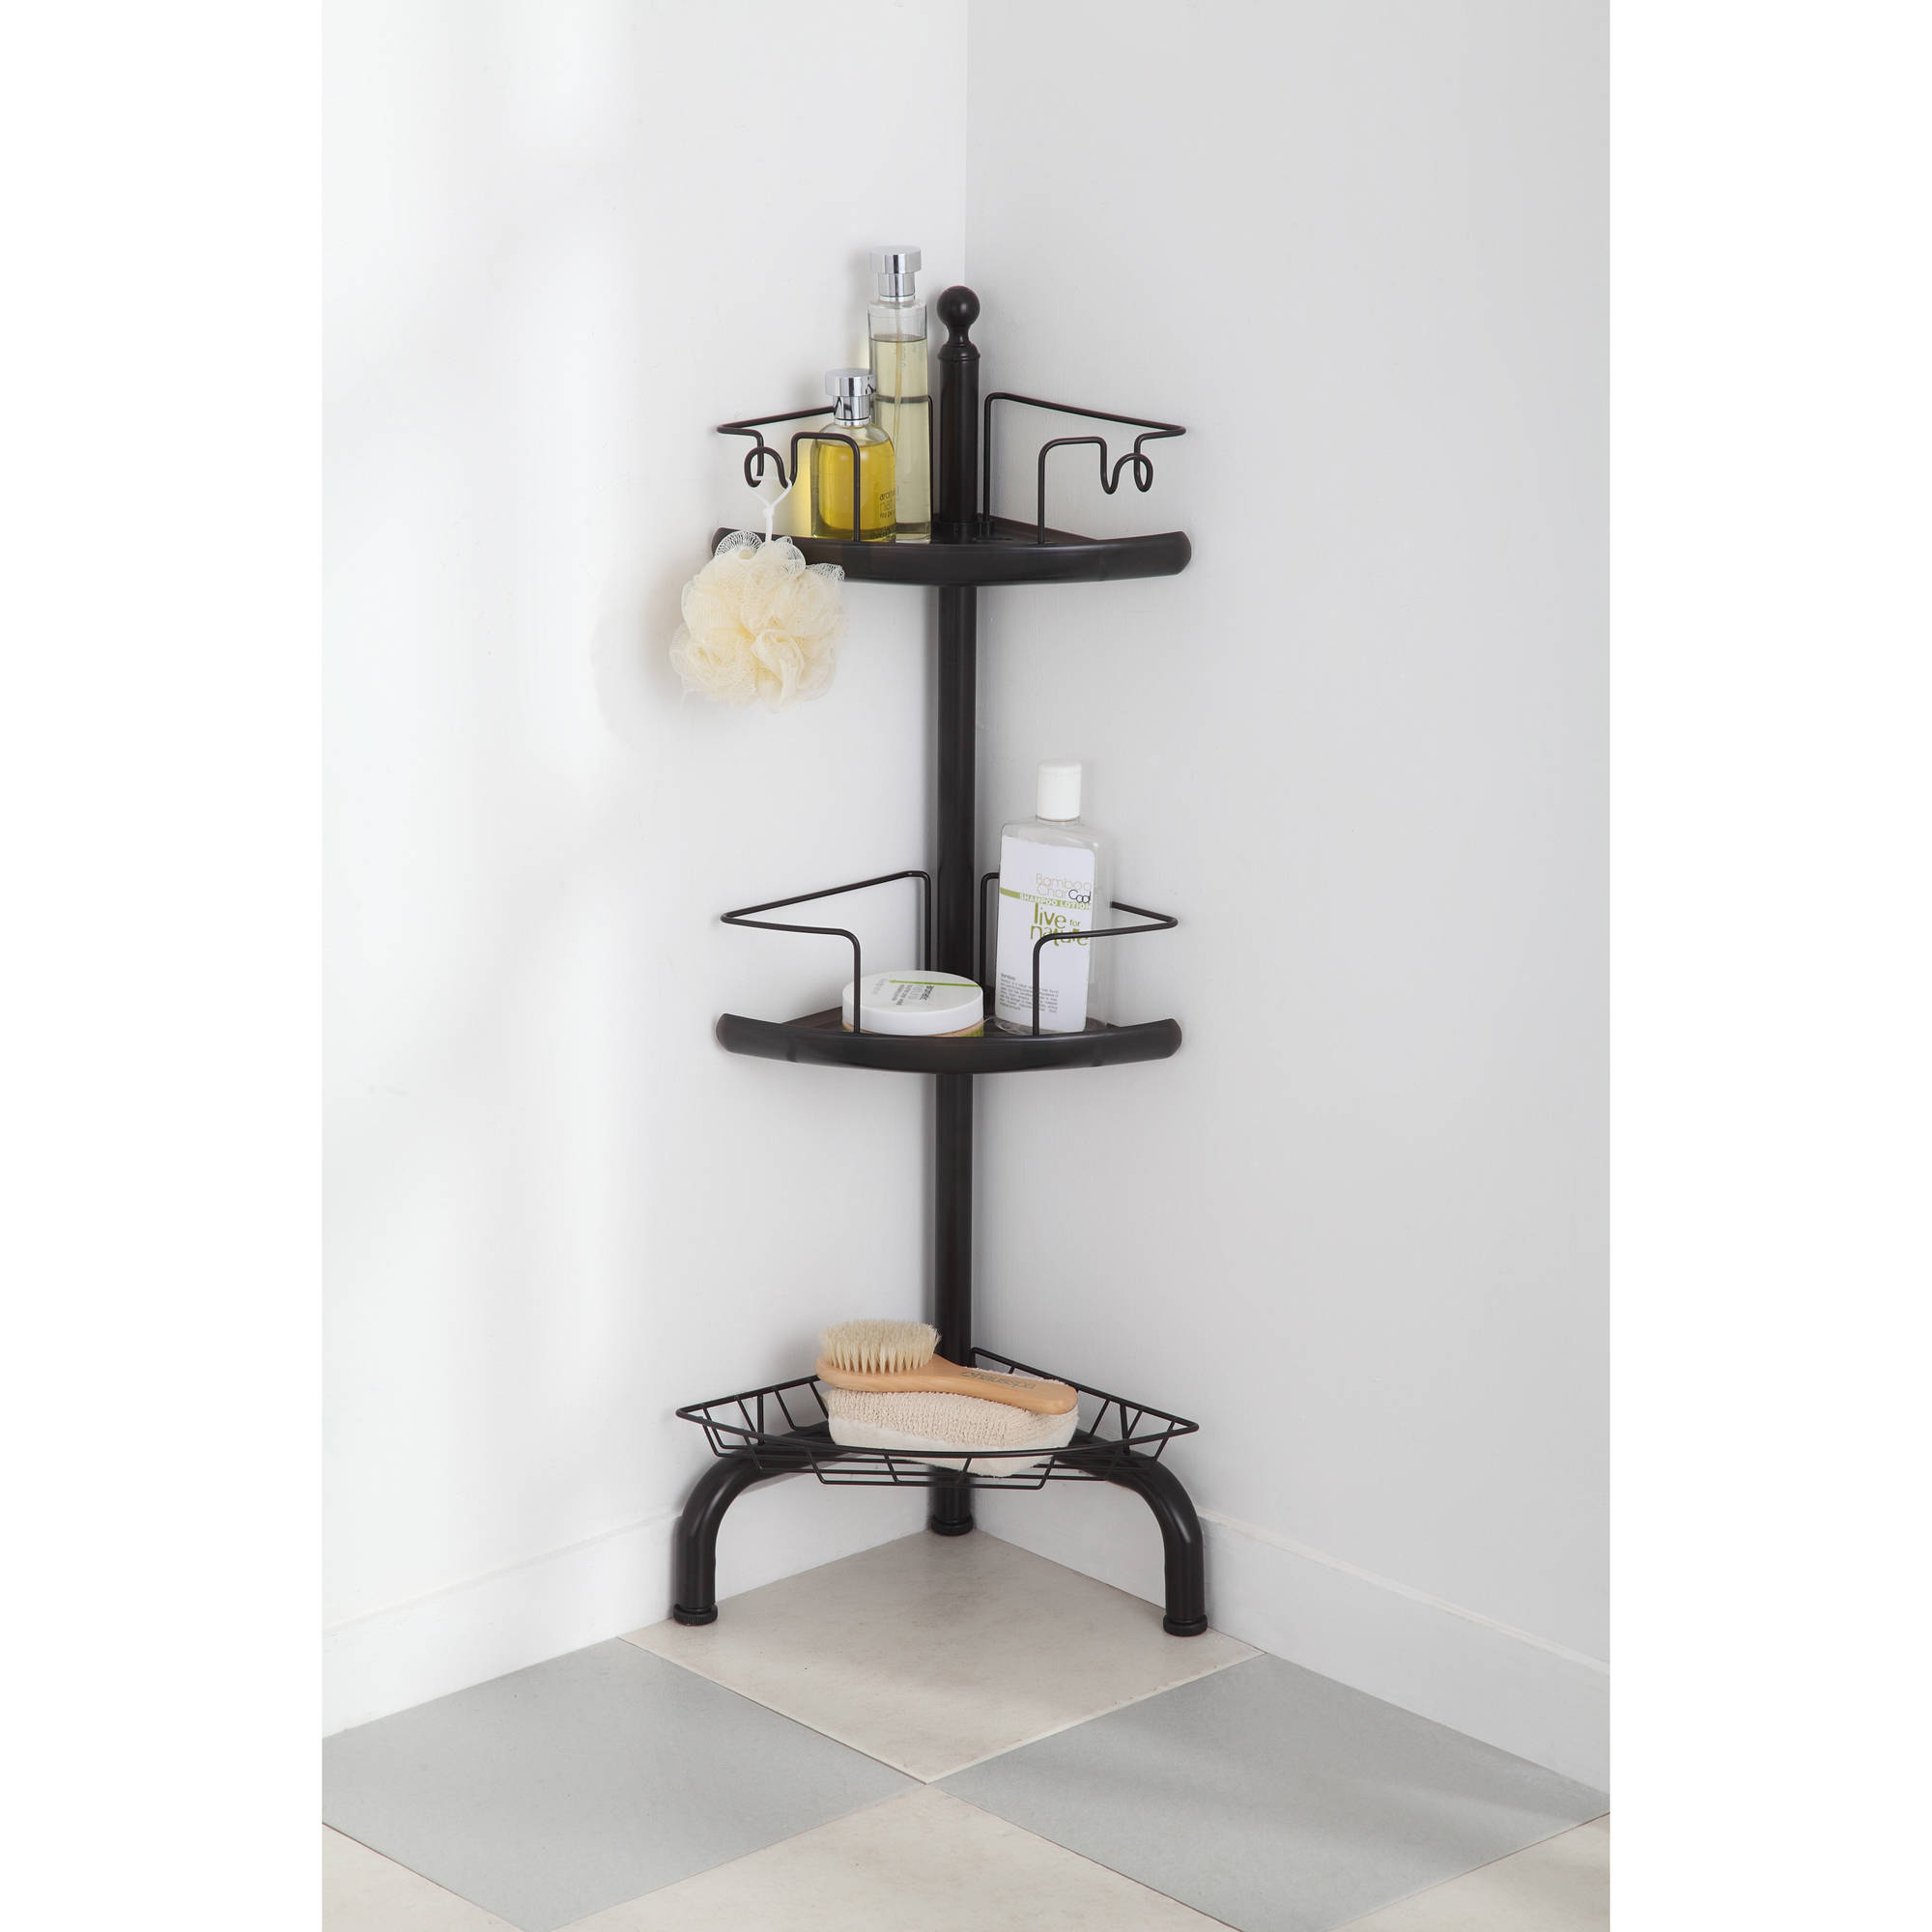 Homezone 3 Tier Adjustable Corner Shower Caddy Oil Rubbed